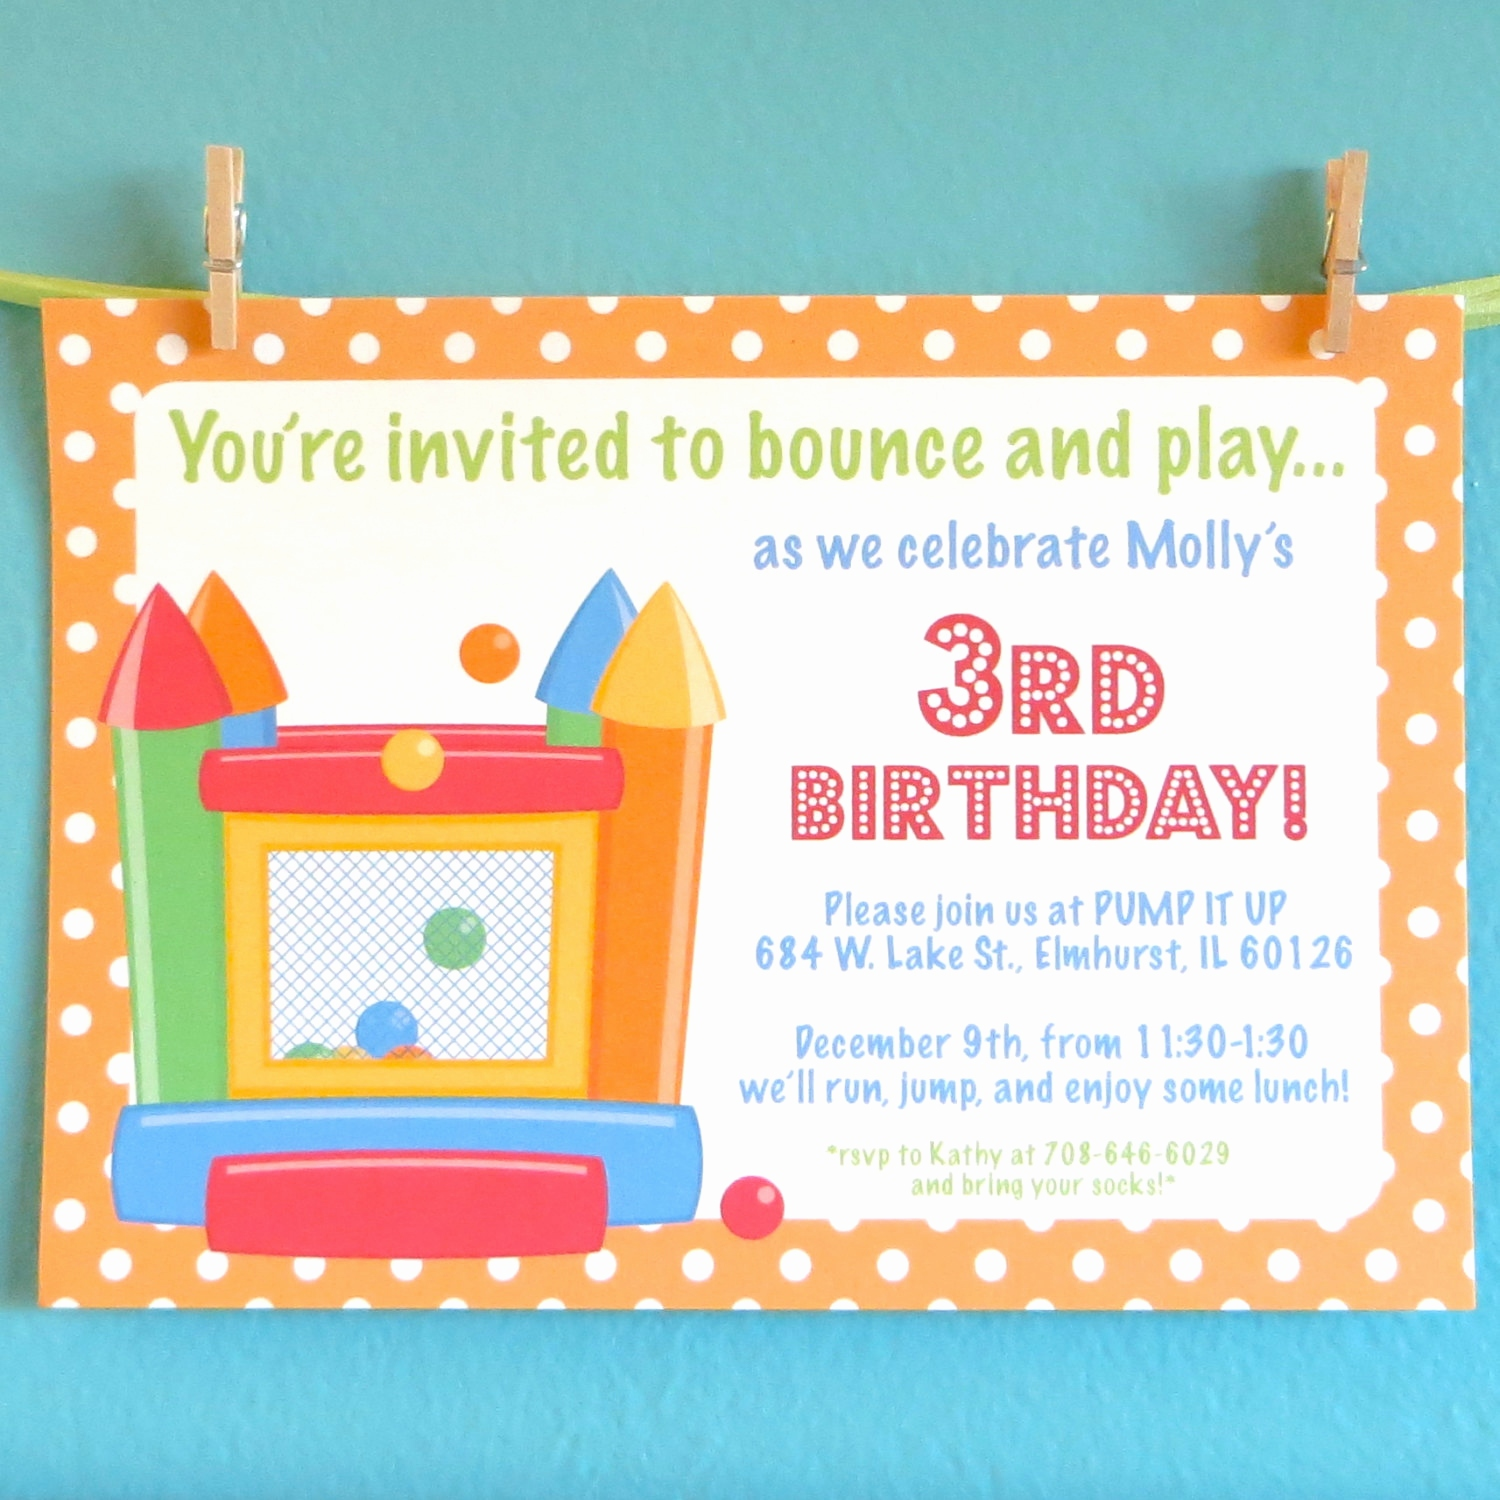 kids birthday party invitation message ; lunch-party-invitation-wording-unique-bouncy-house-invitations-kids-birthday-party-invitation-of-lunch-party-invitation-wording